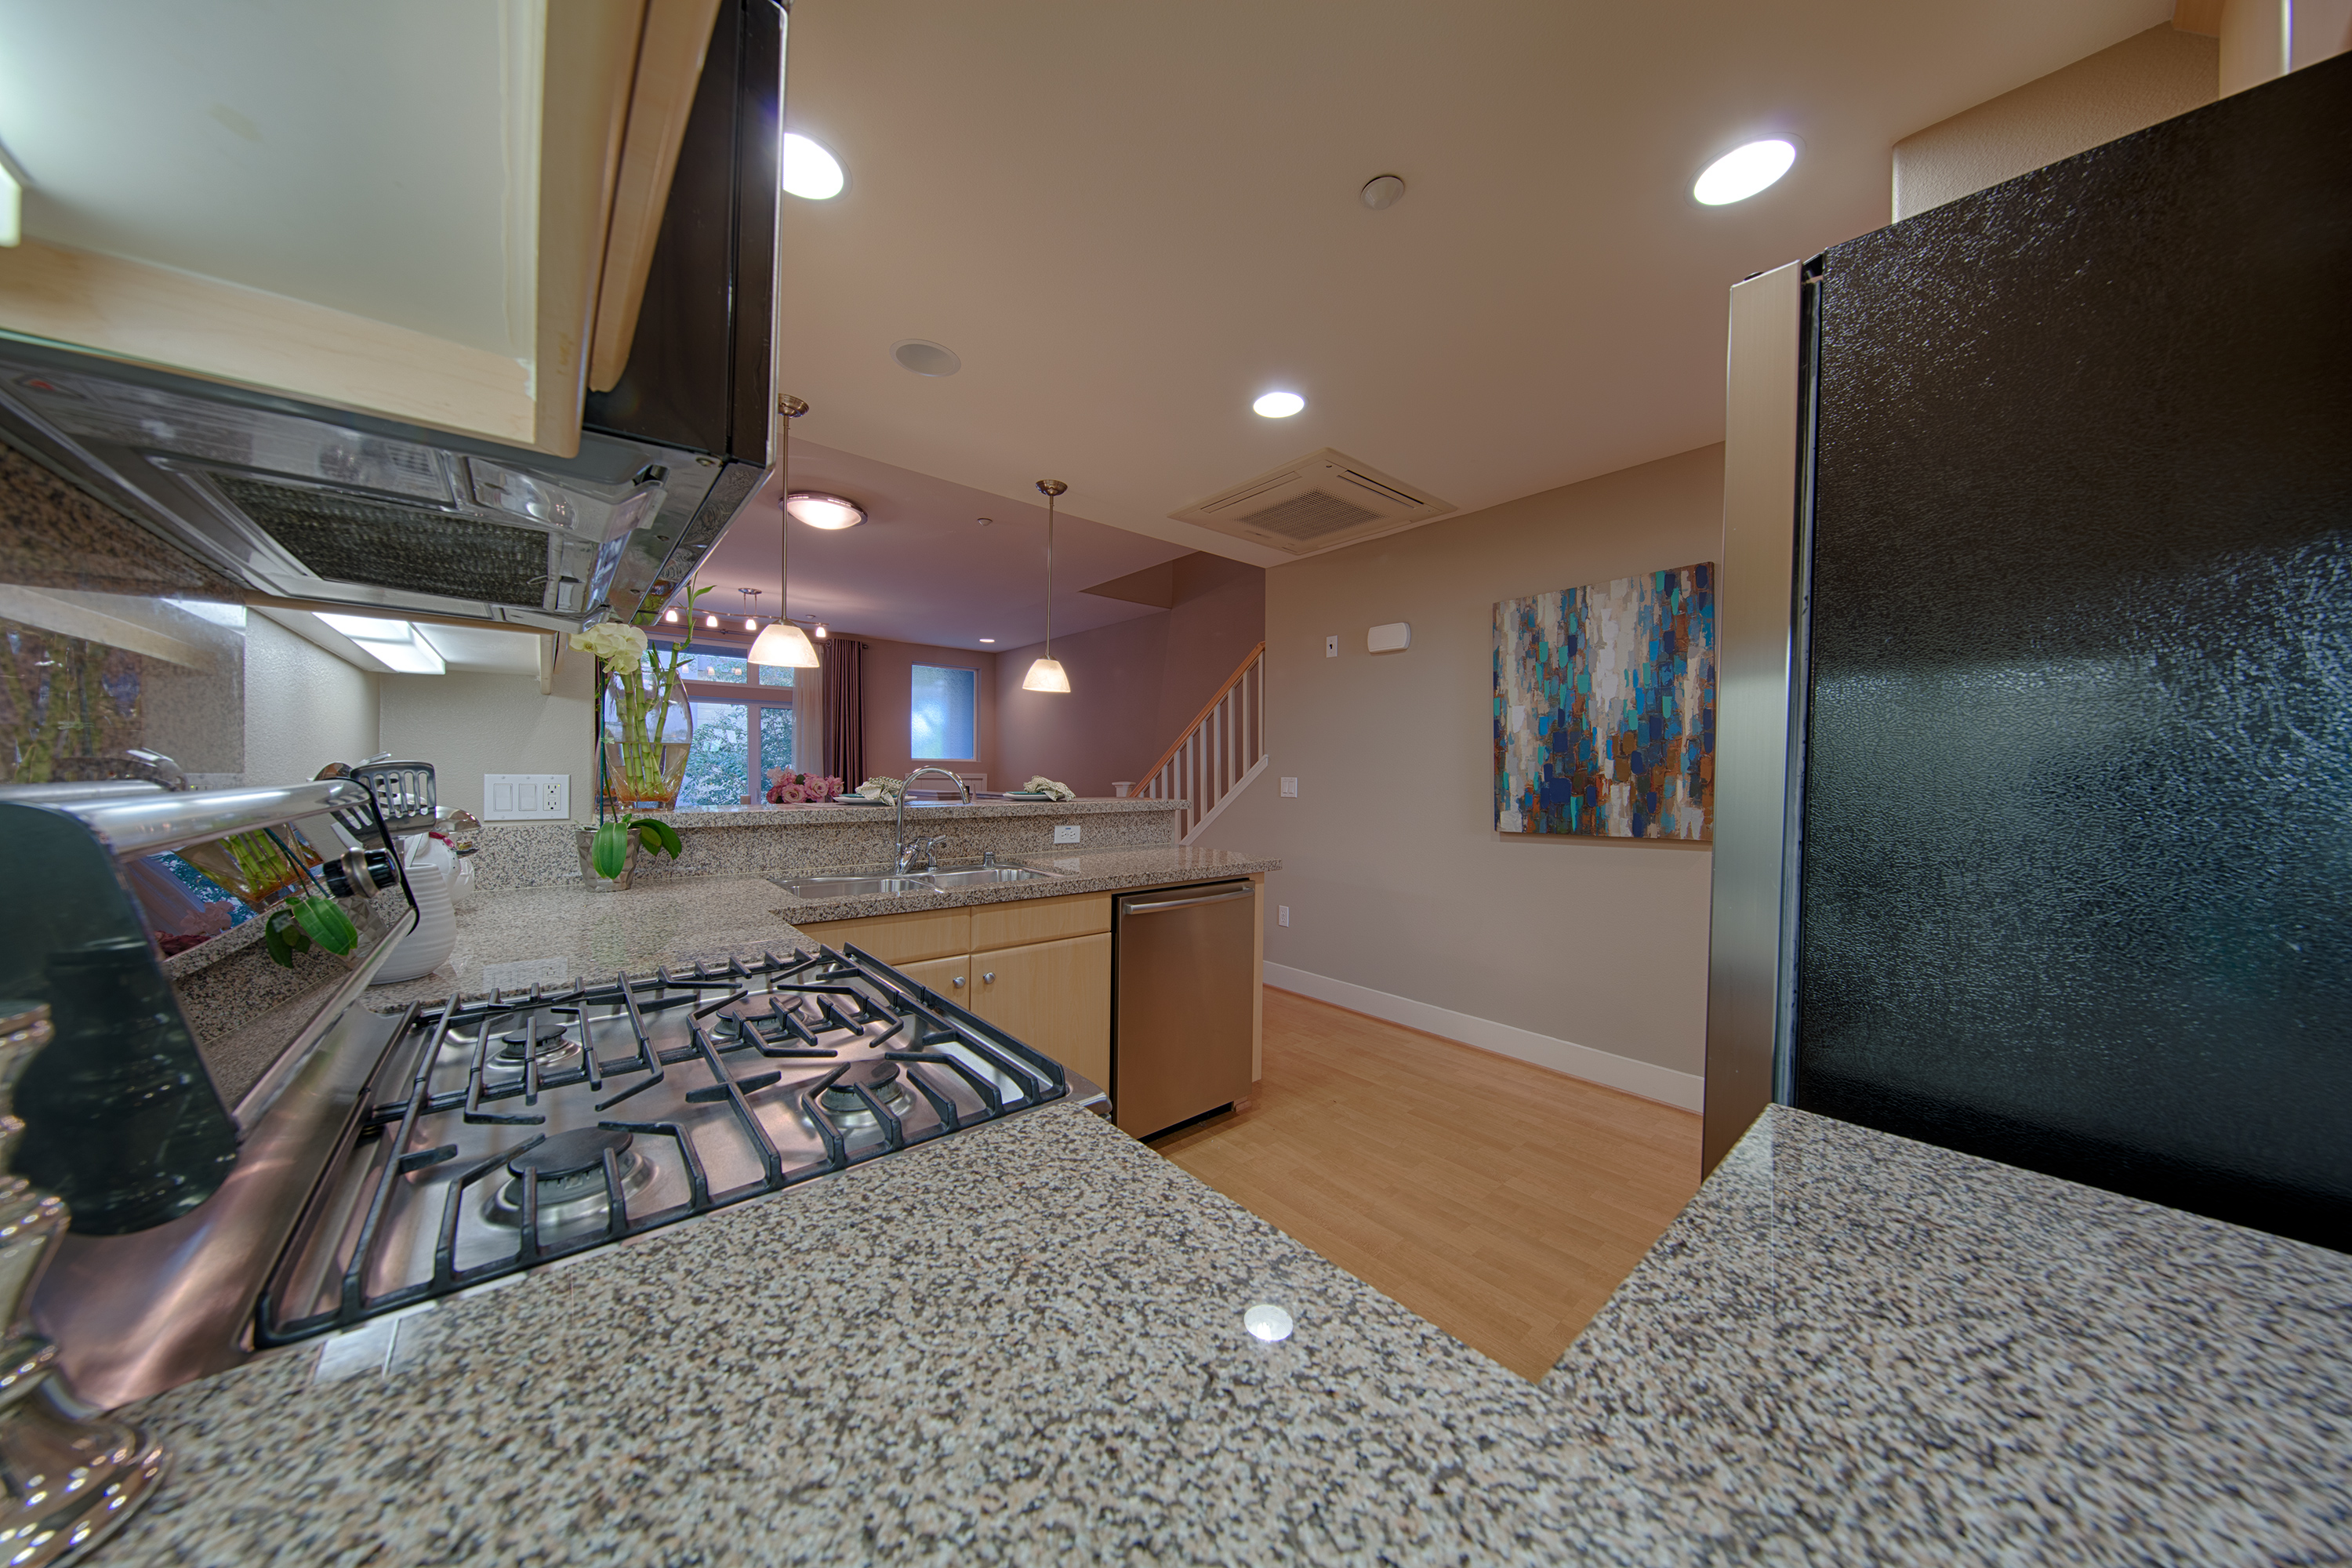 3702 Heron Way, Palo Alto 94303 - Kitchen (C)